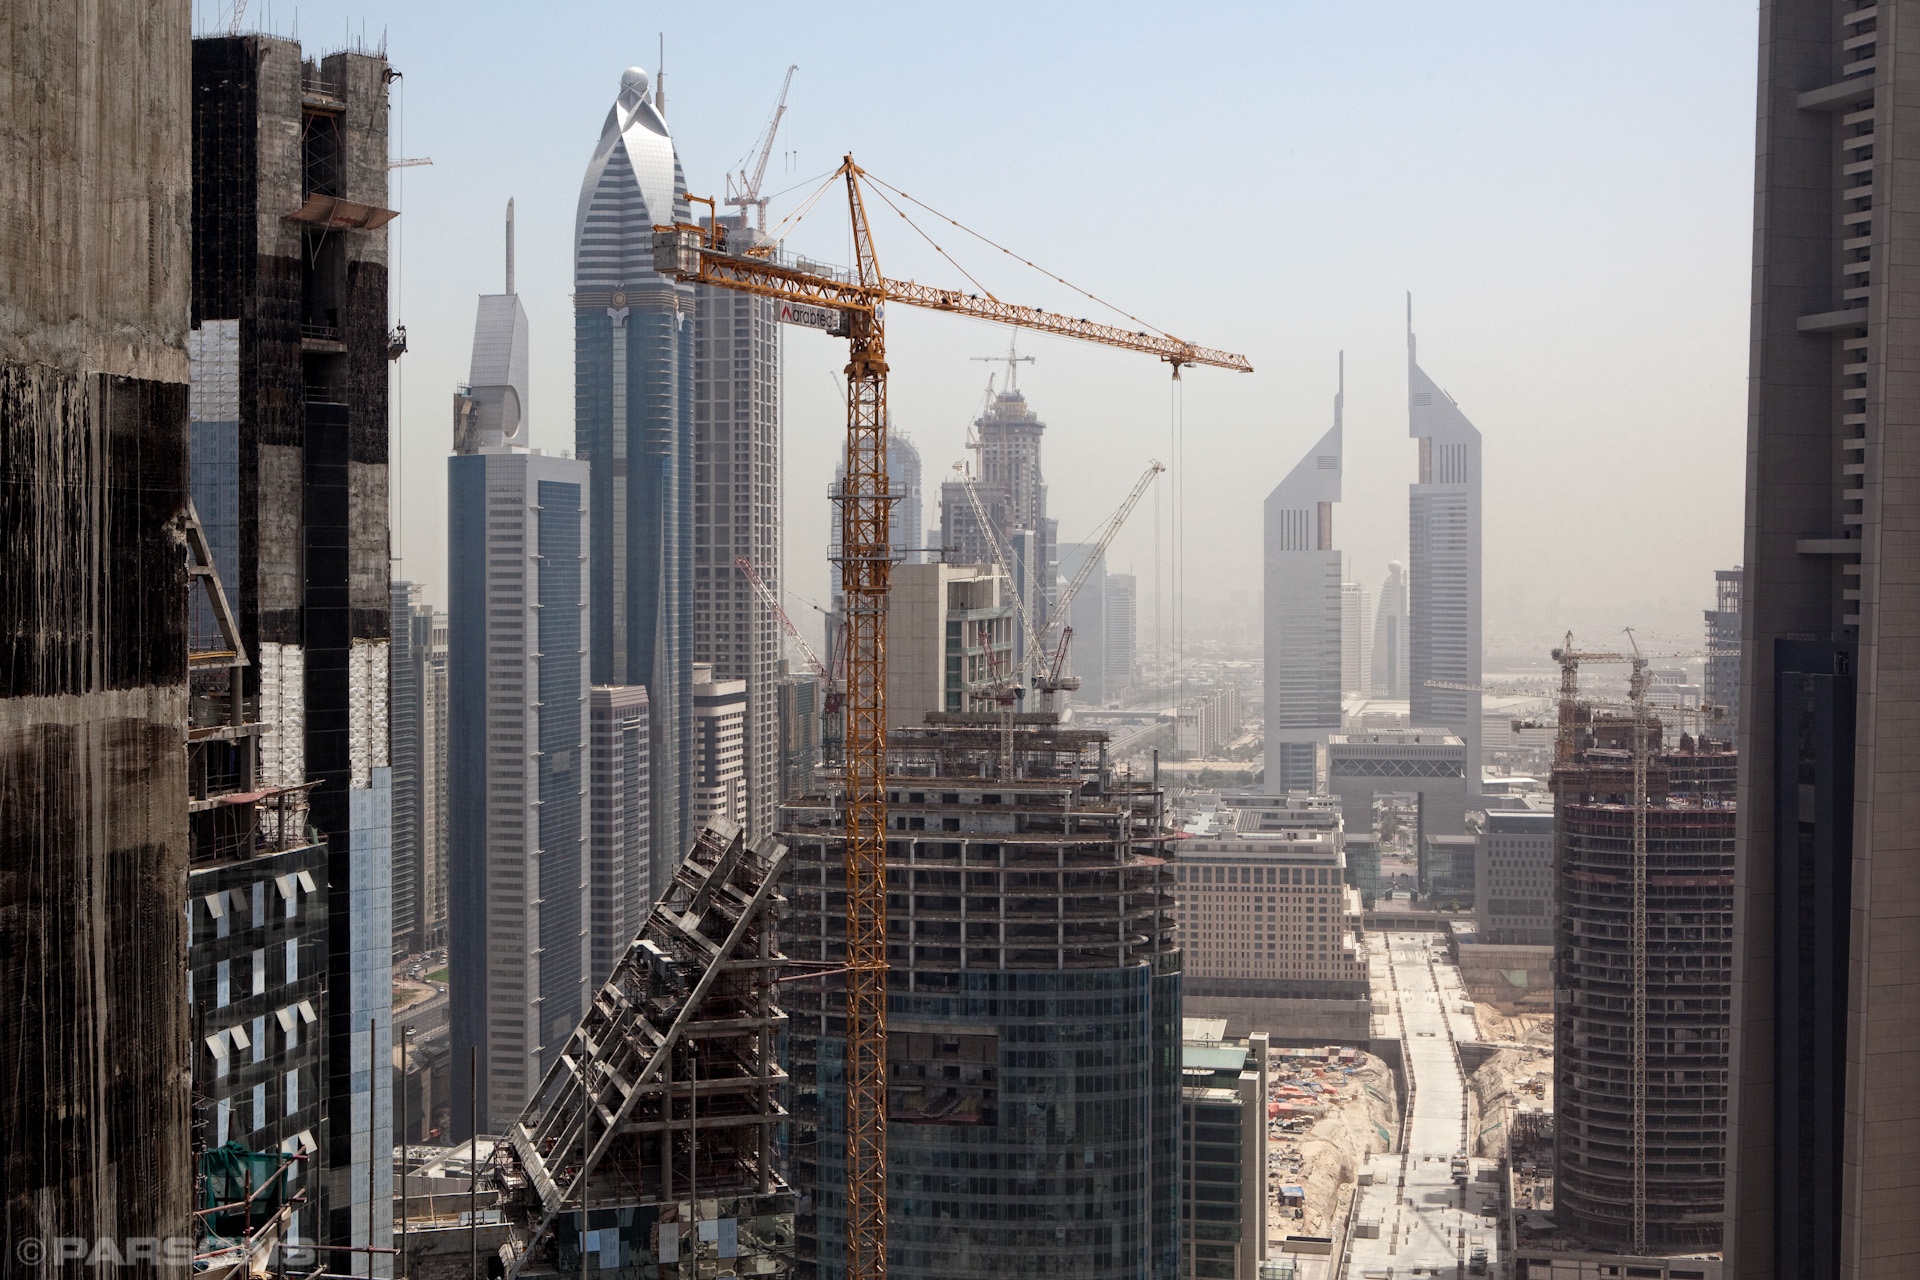 Civil-Engineering-Dubai-Skyline-Construction-Skyline-UAE.JPG